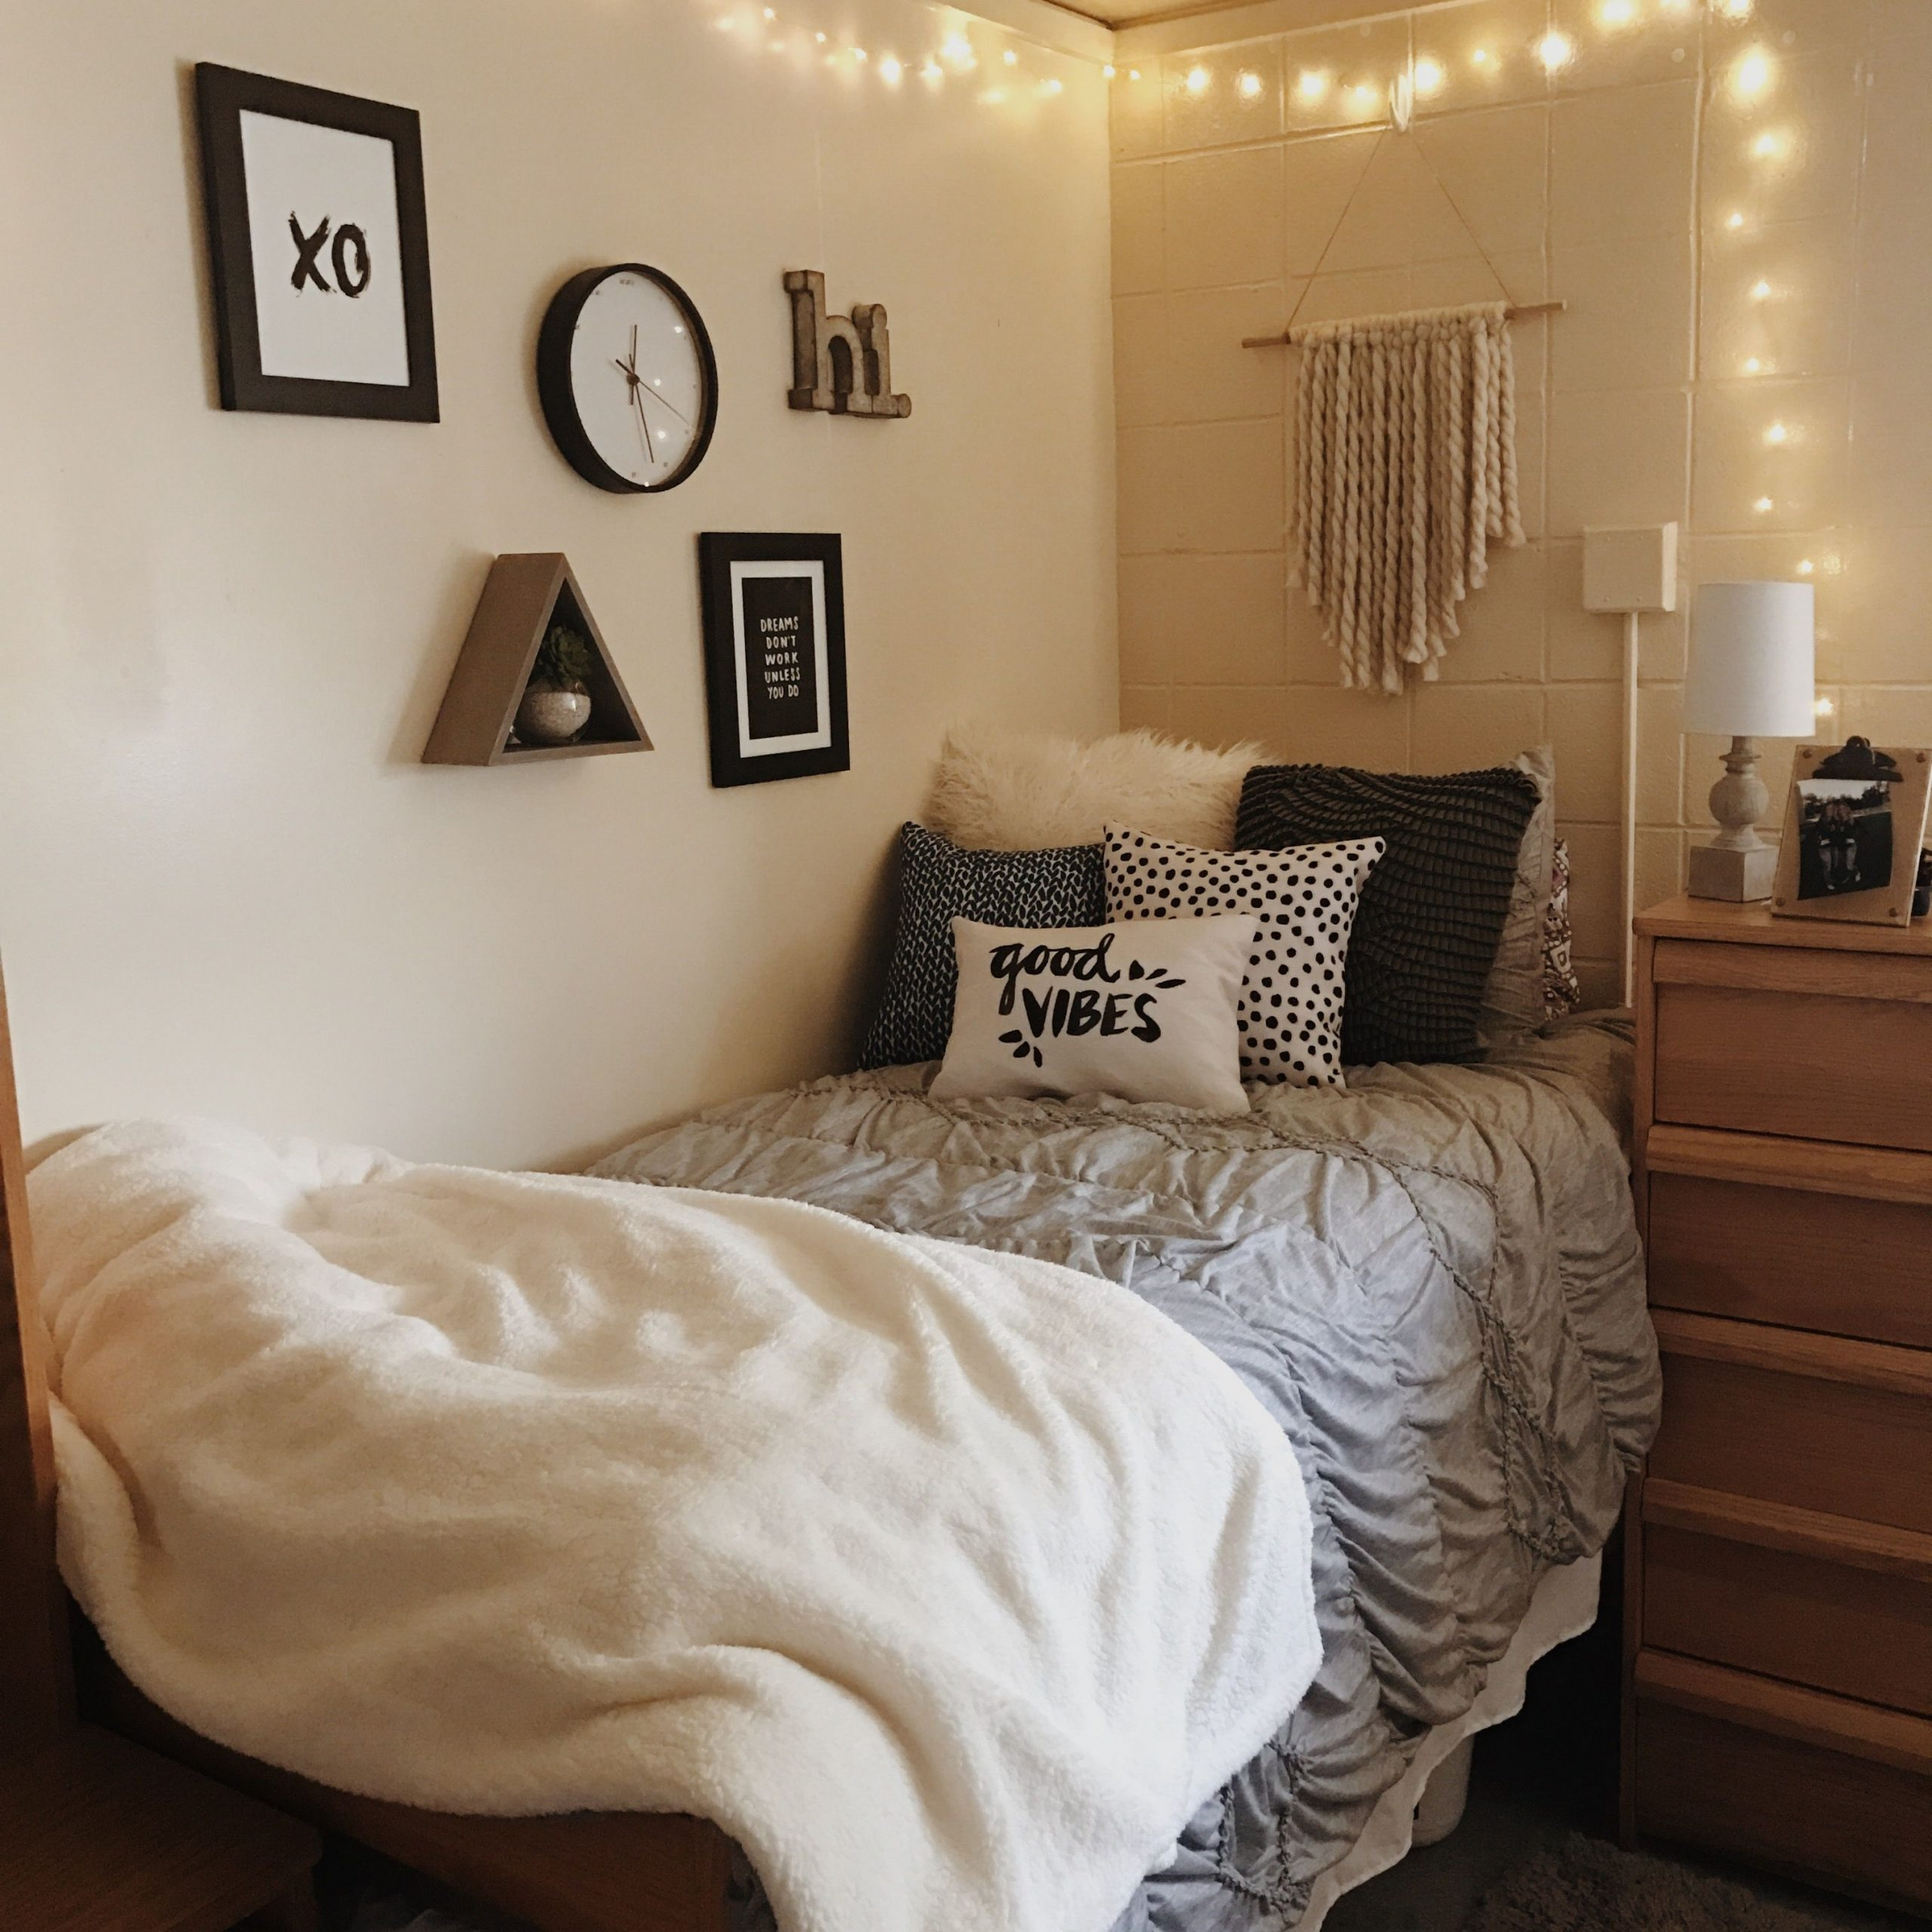 Artistic College Dorm Decor On Stunning Pin by Linda Menz On Cutie Rooms On College Dorm Decor